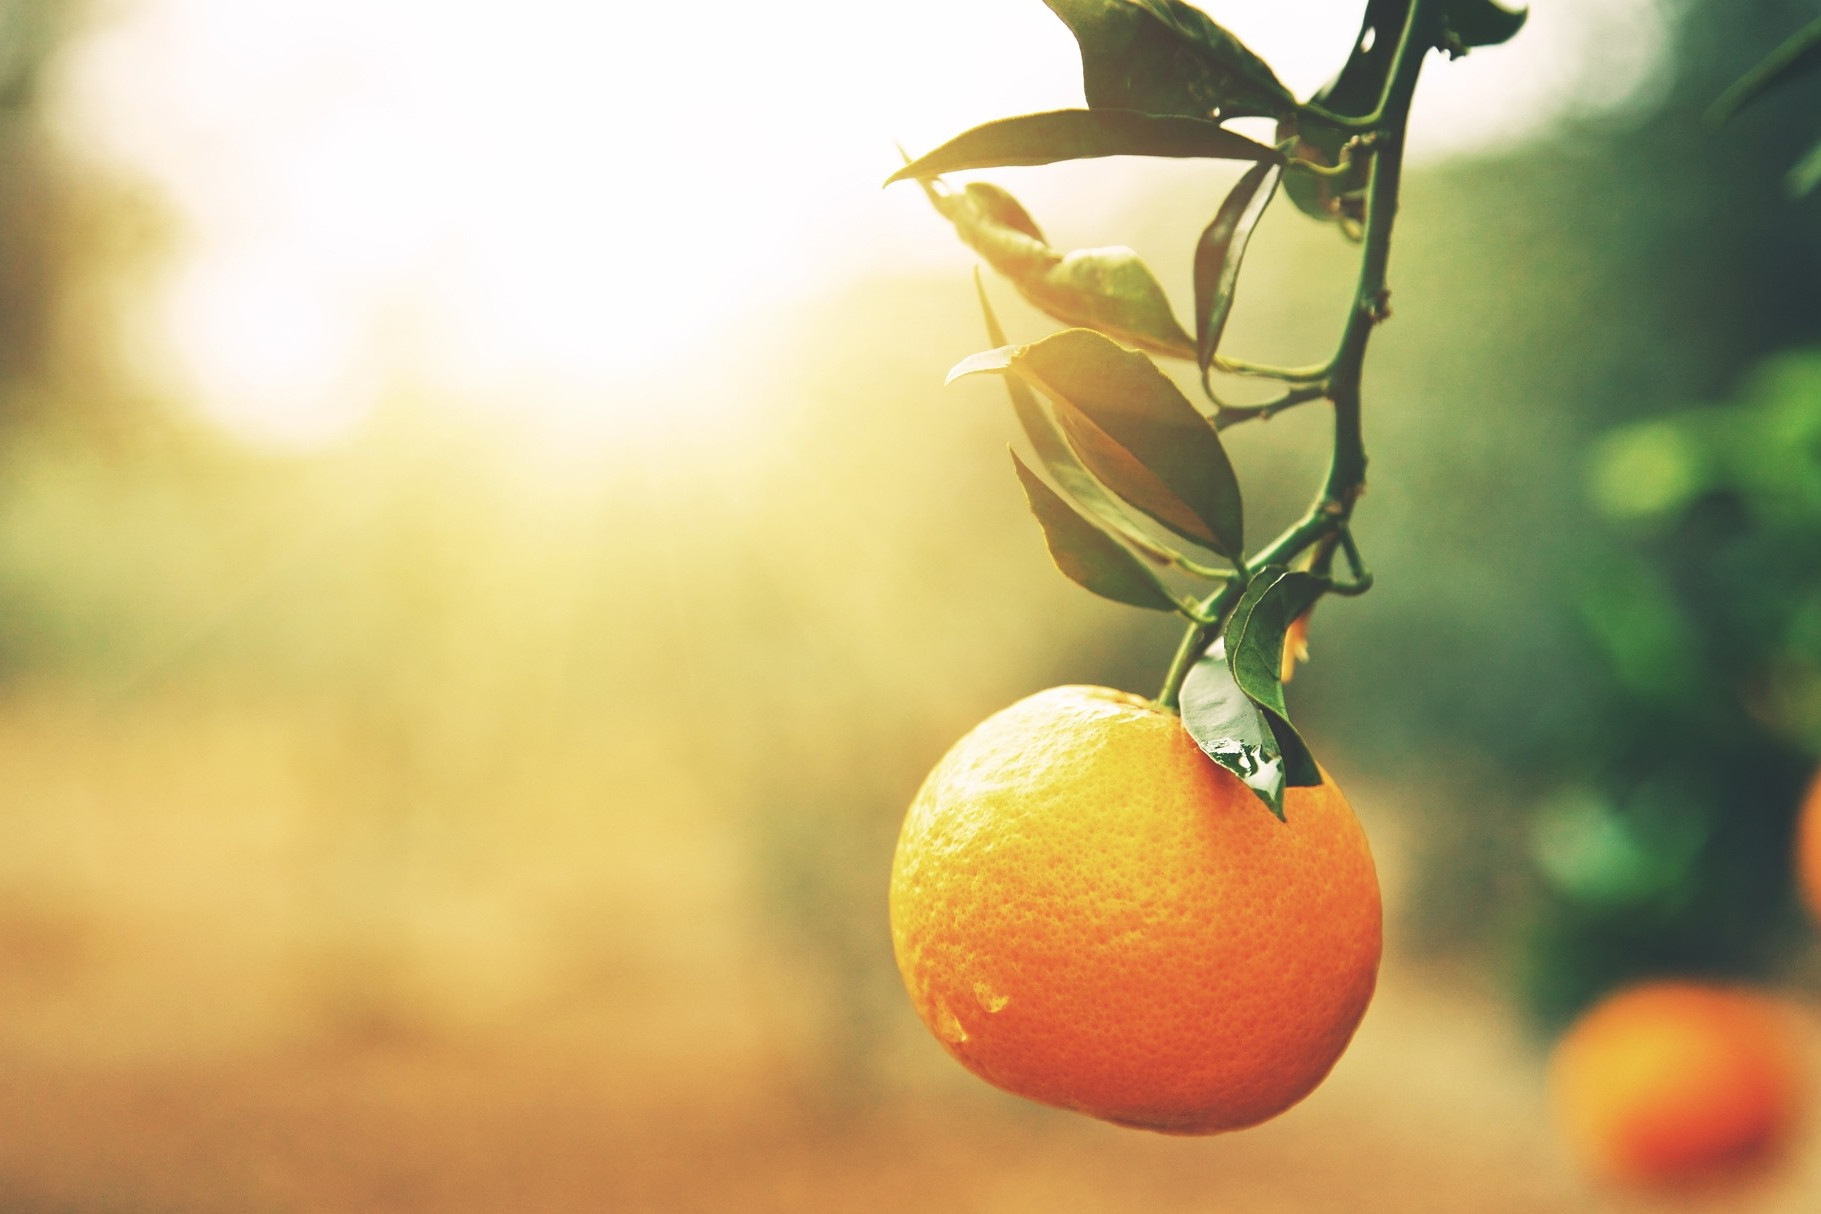 A single orange hanging from a tree branch.